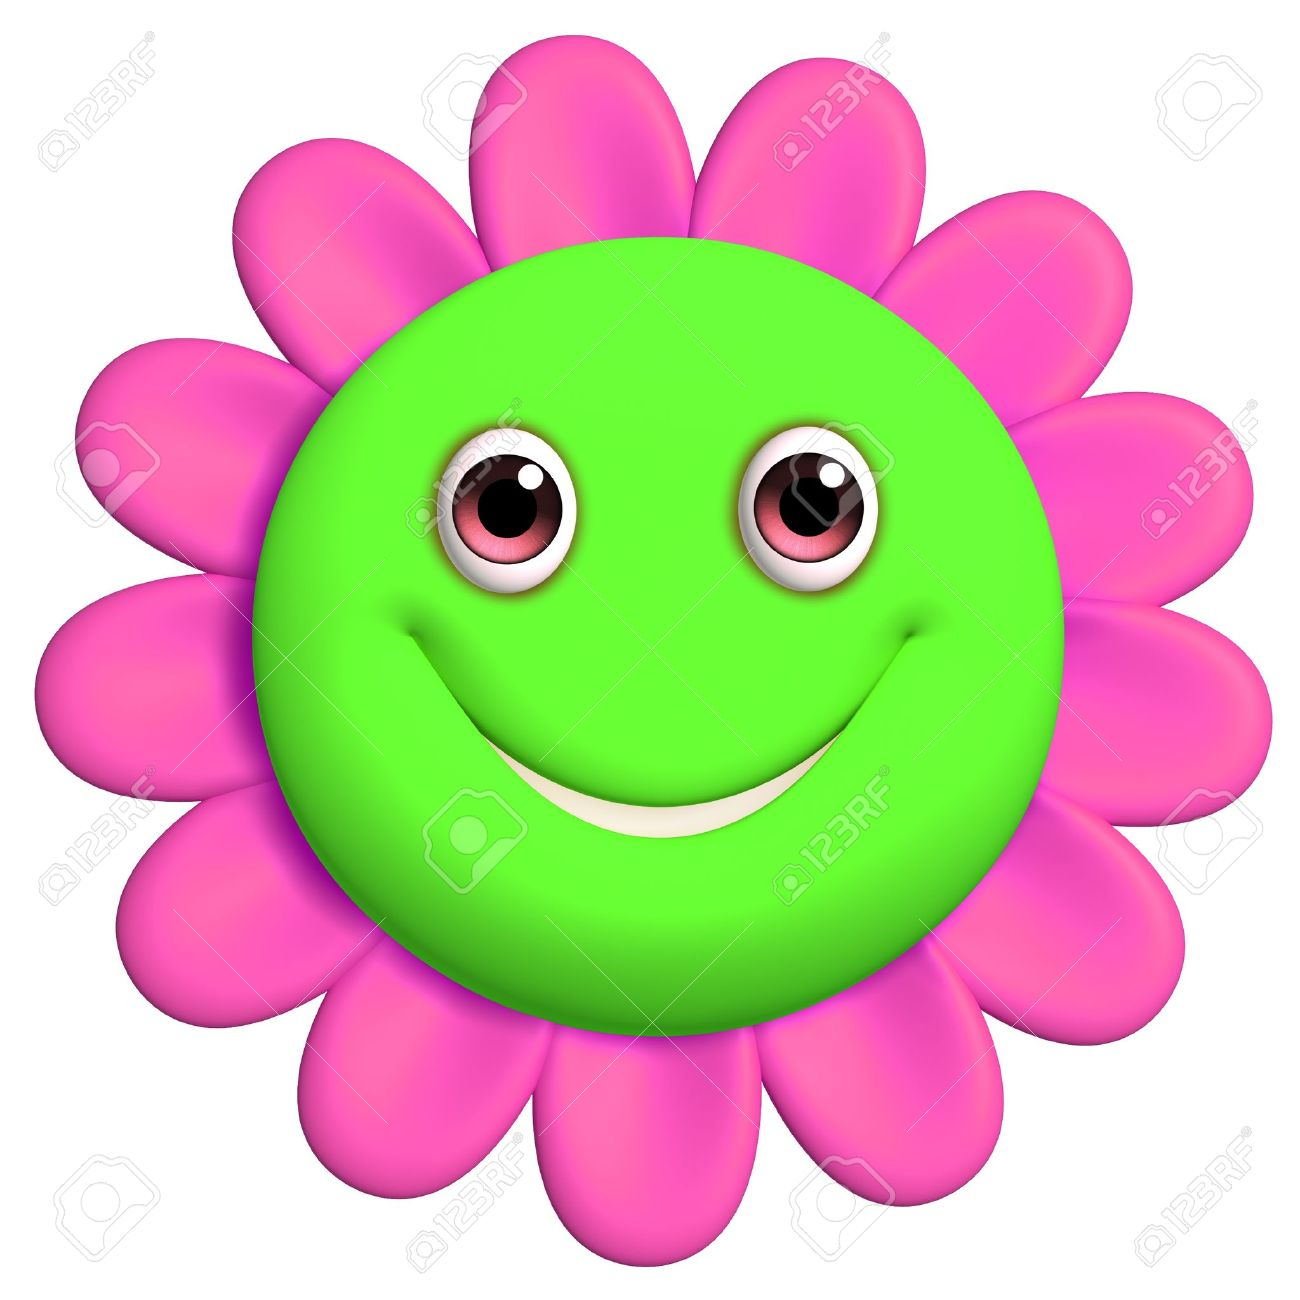 Green Smiley Face Images Stock Free Green